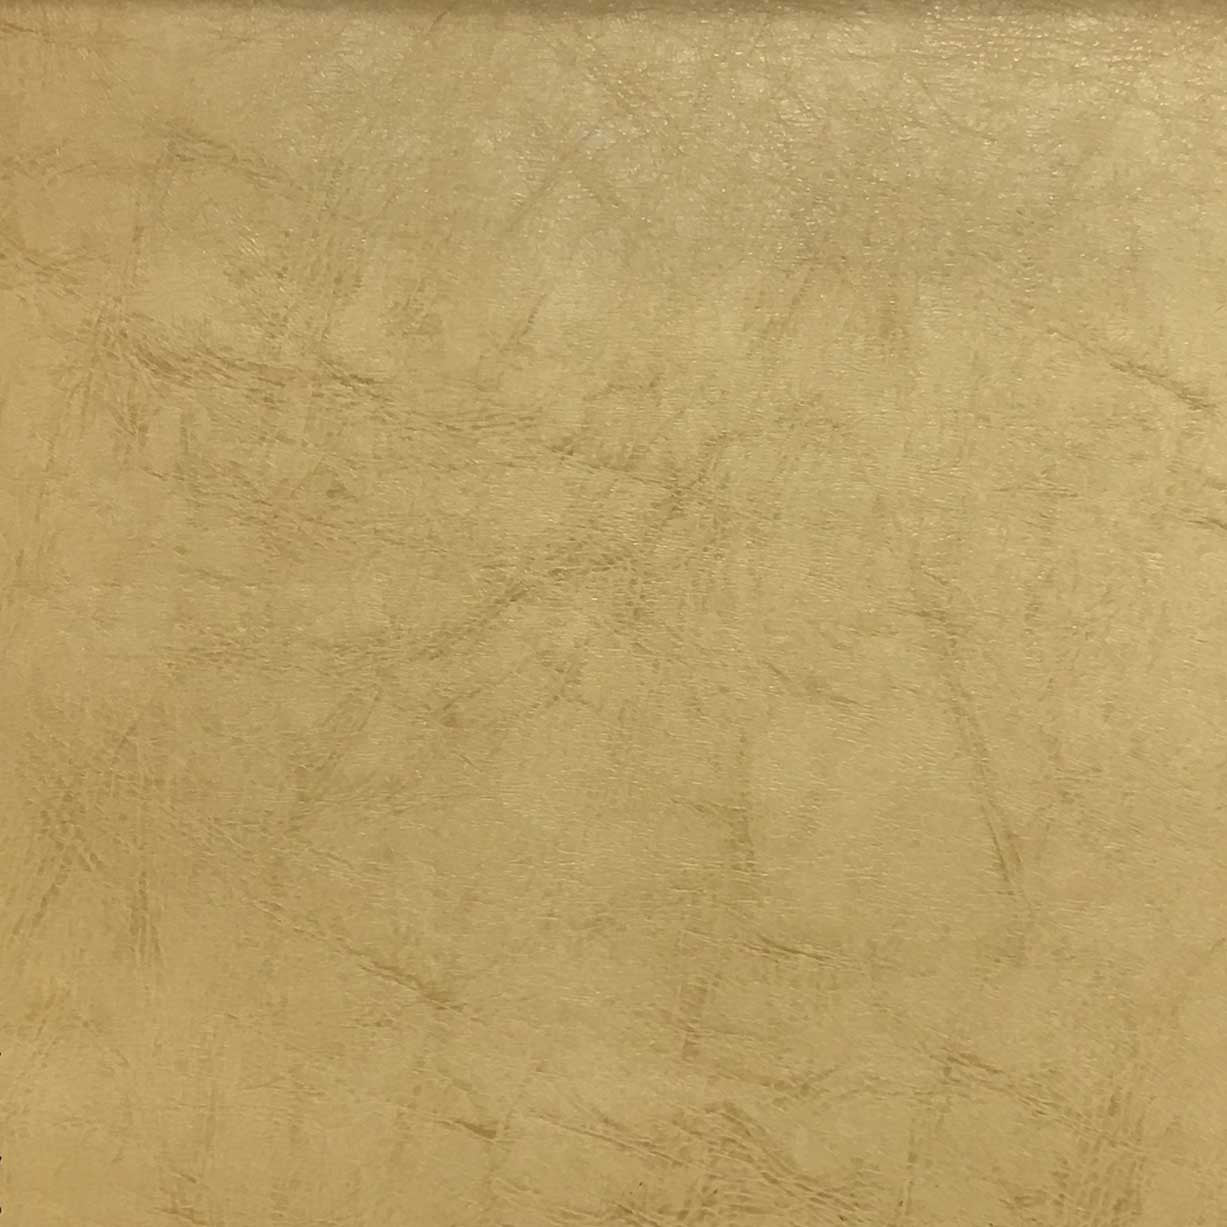 Brink solid vinyl vegan faux leather upholstery fabric for Cloth for sale by the yard